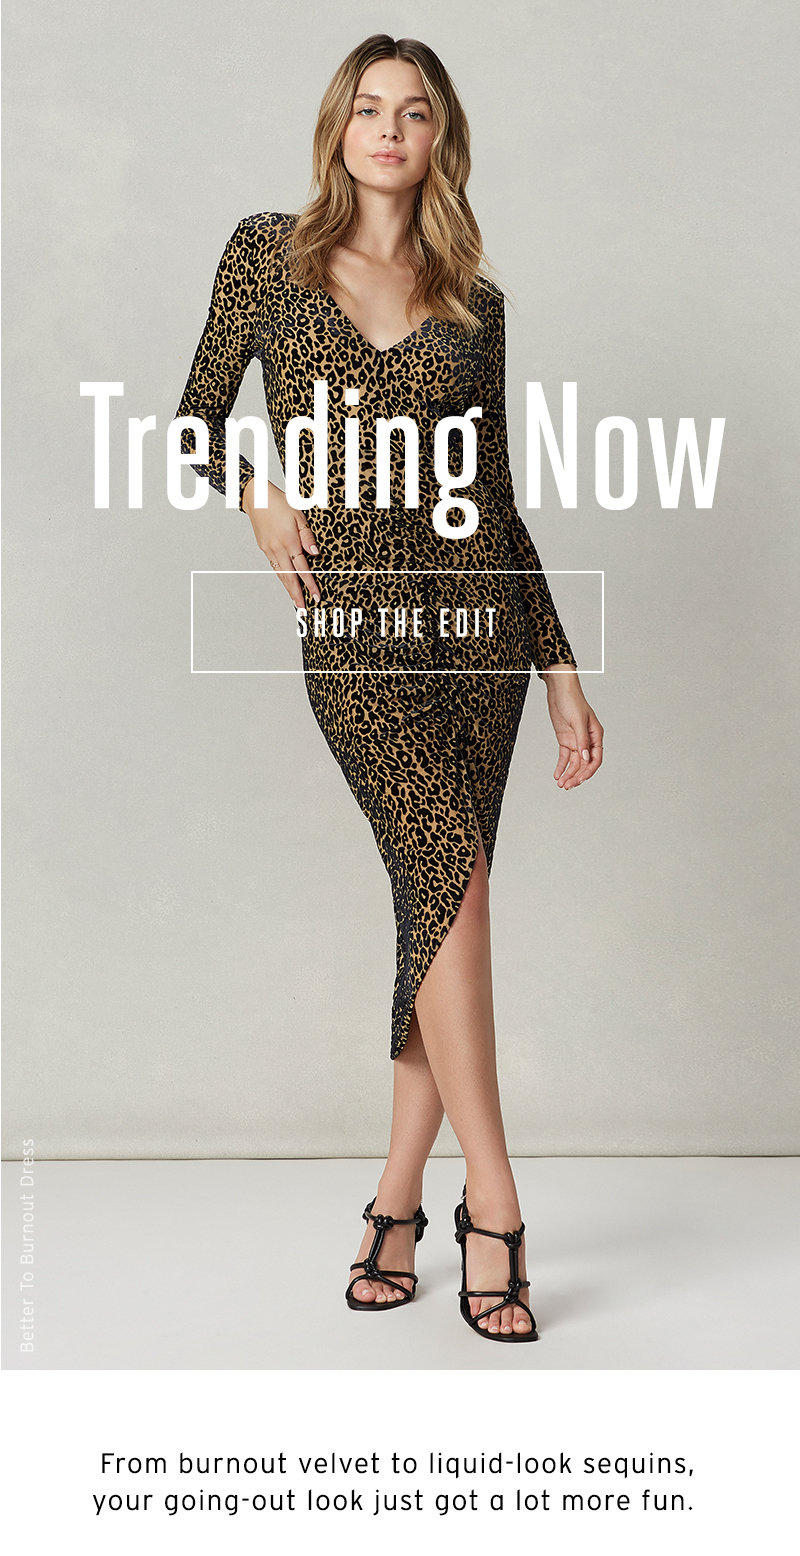 Trending Now. From burnout velvet to liquid-look sequins, your going-out look just got a lot more fun. Shop The Edit.